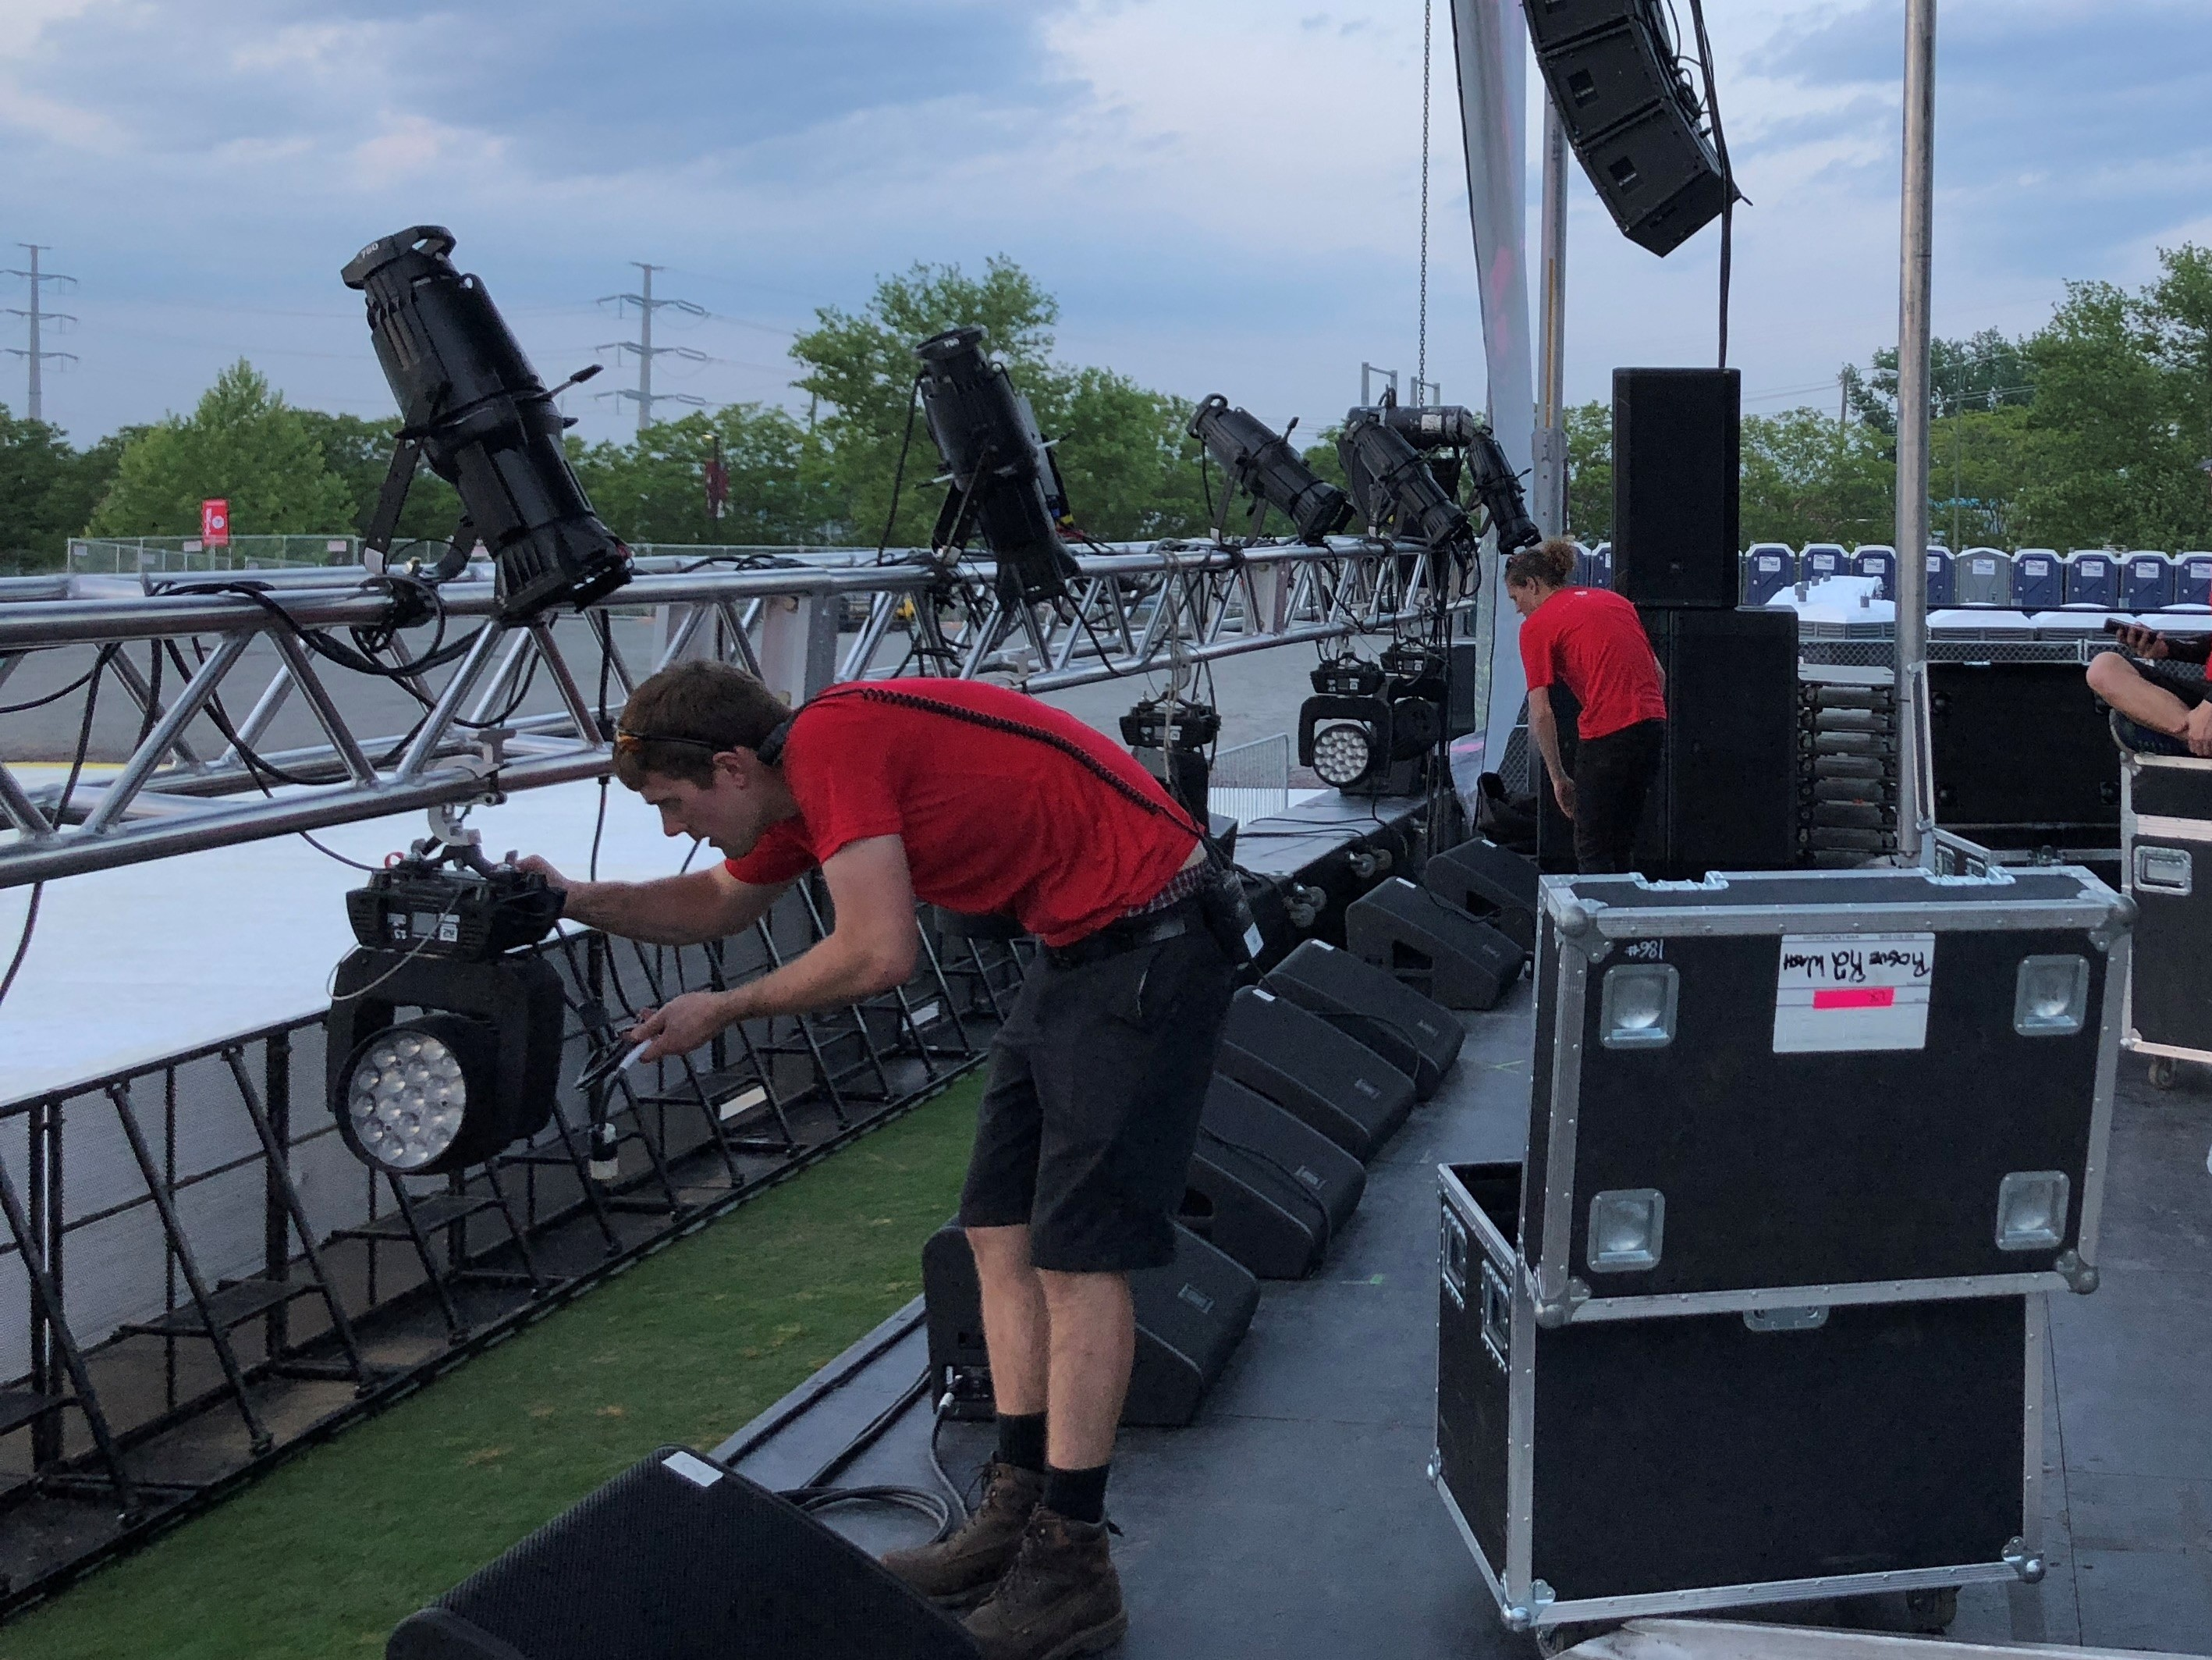 Technicians from The Lighting & Sound Co set up stage lighting for Punk in Drublic, a large outdoor concert in Richmond, VA